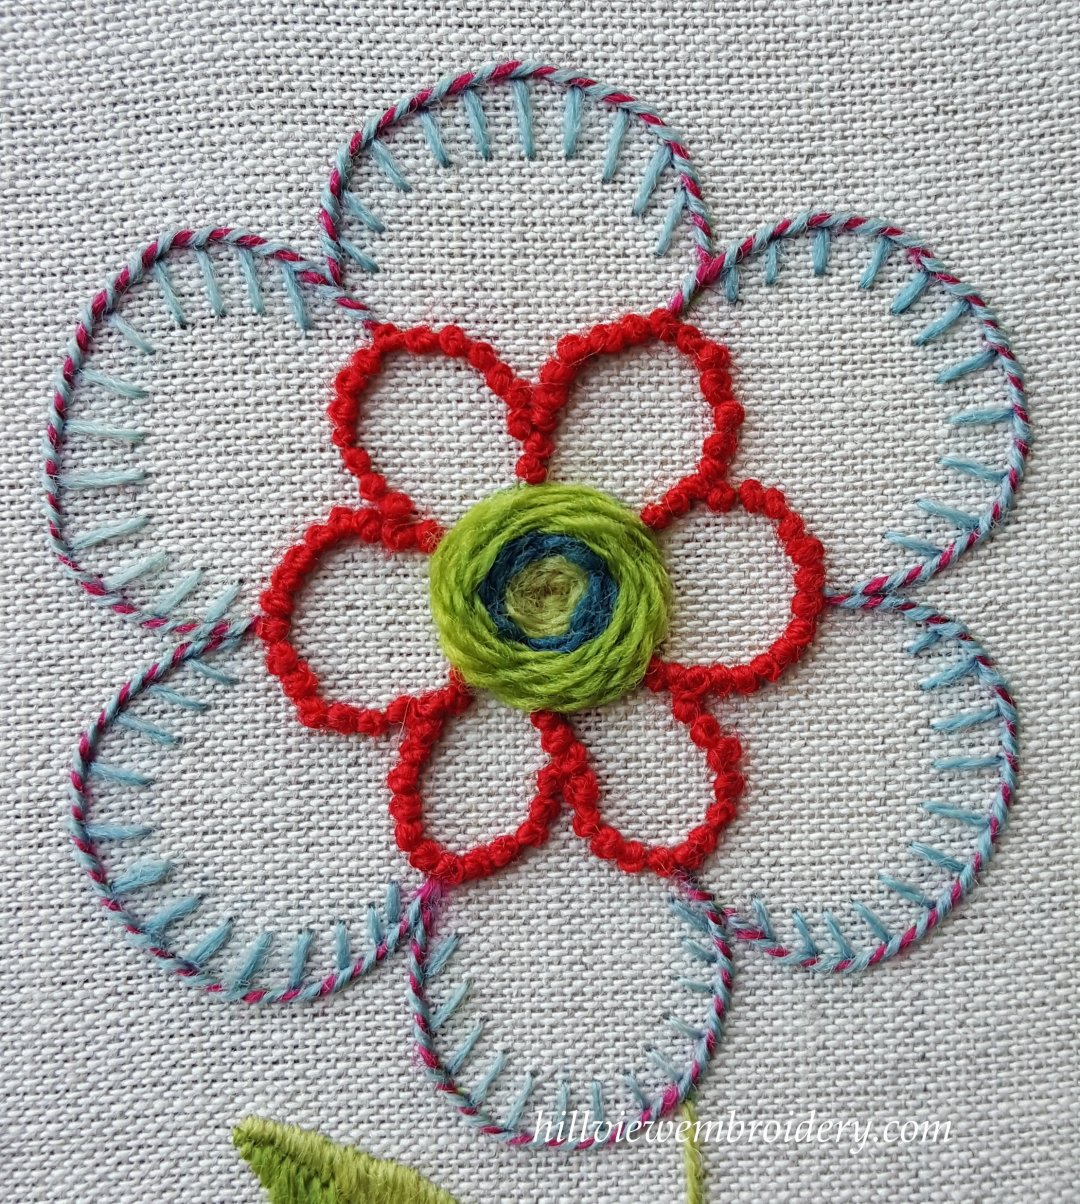 completed flower motif